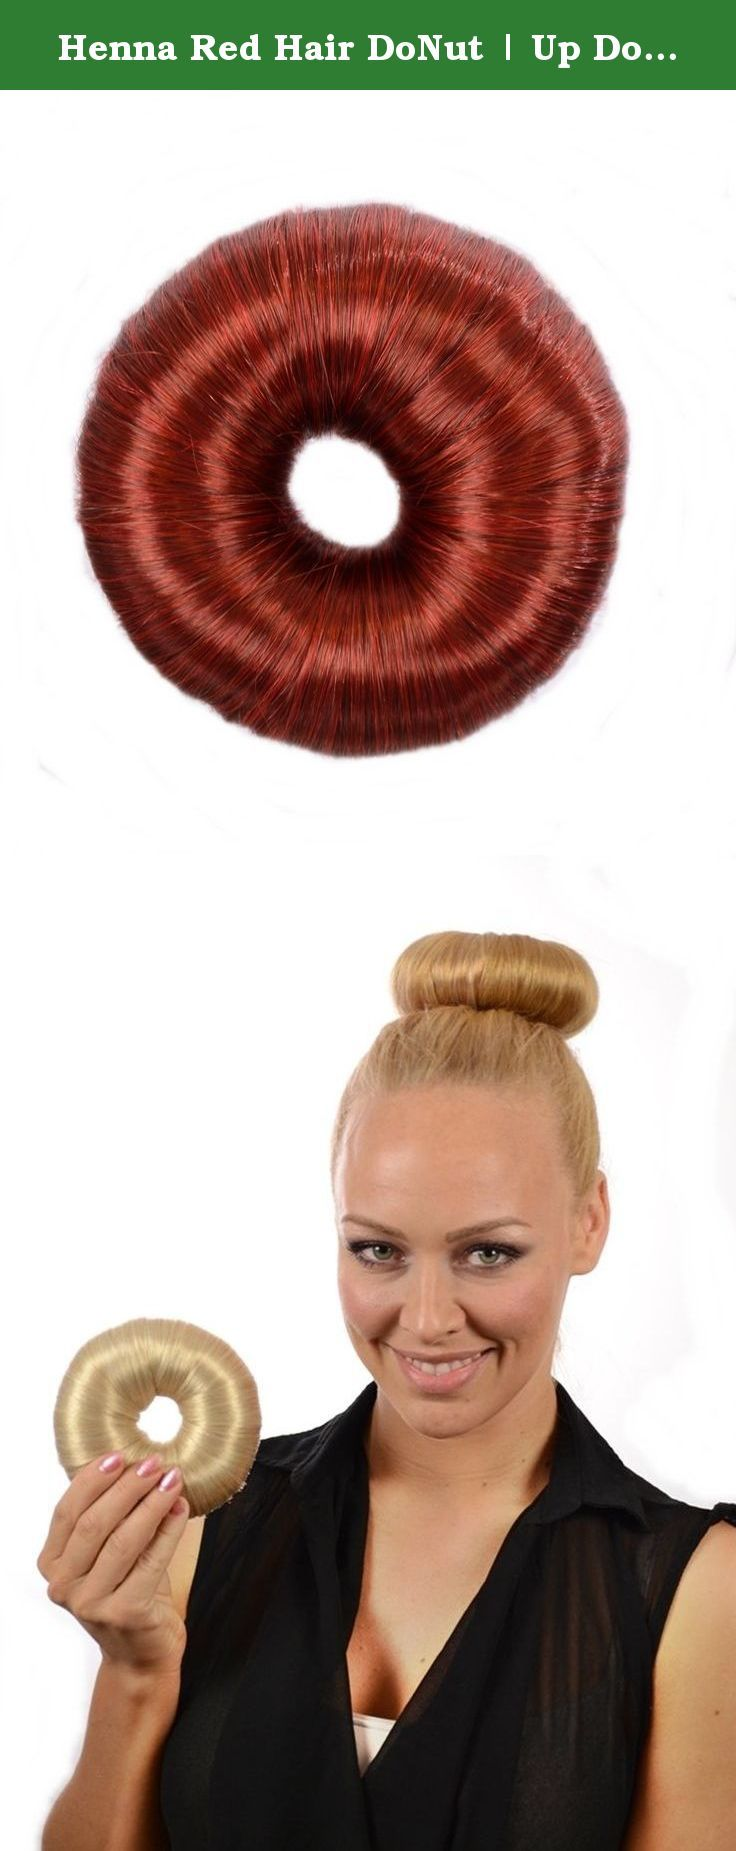 Henna Red Hair DoNut | Up Do Soft Flexi Hair Ring | Multi Use Hairstyler | Bun creator. Hair DoNut | Flexi Soft Hair Rings | Create Fabulous Top Knots Buns & Rings Made from soft flexi rings wrapped in synthetic fibre which gives a fuller healthier looking hairstyle. No sponge showing from your updo style with Hair By MissTresses UpDo Nuts - Choose from 10 hair shades. Multi style use : Classic Buns, Top Knots, Rings, Loose Buns. Use at work, for fashion or party hairstyle. Hair Do Nuts…